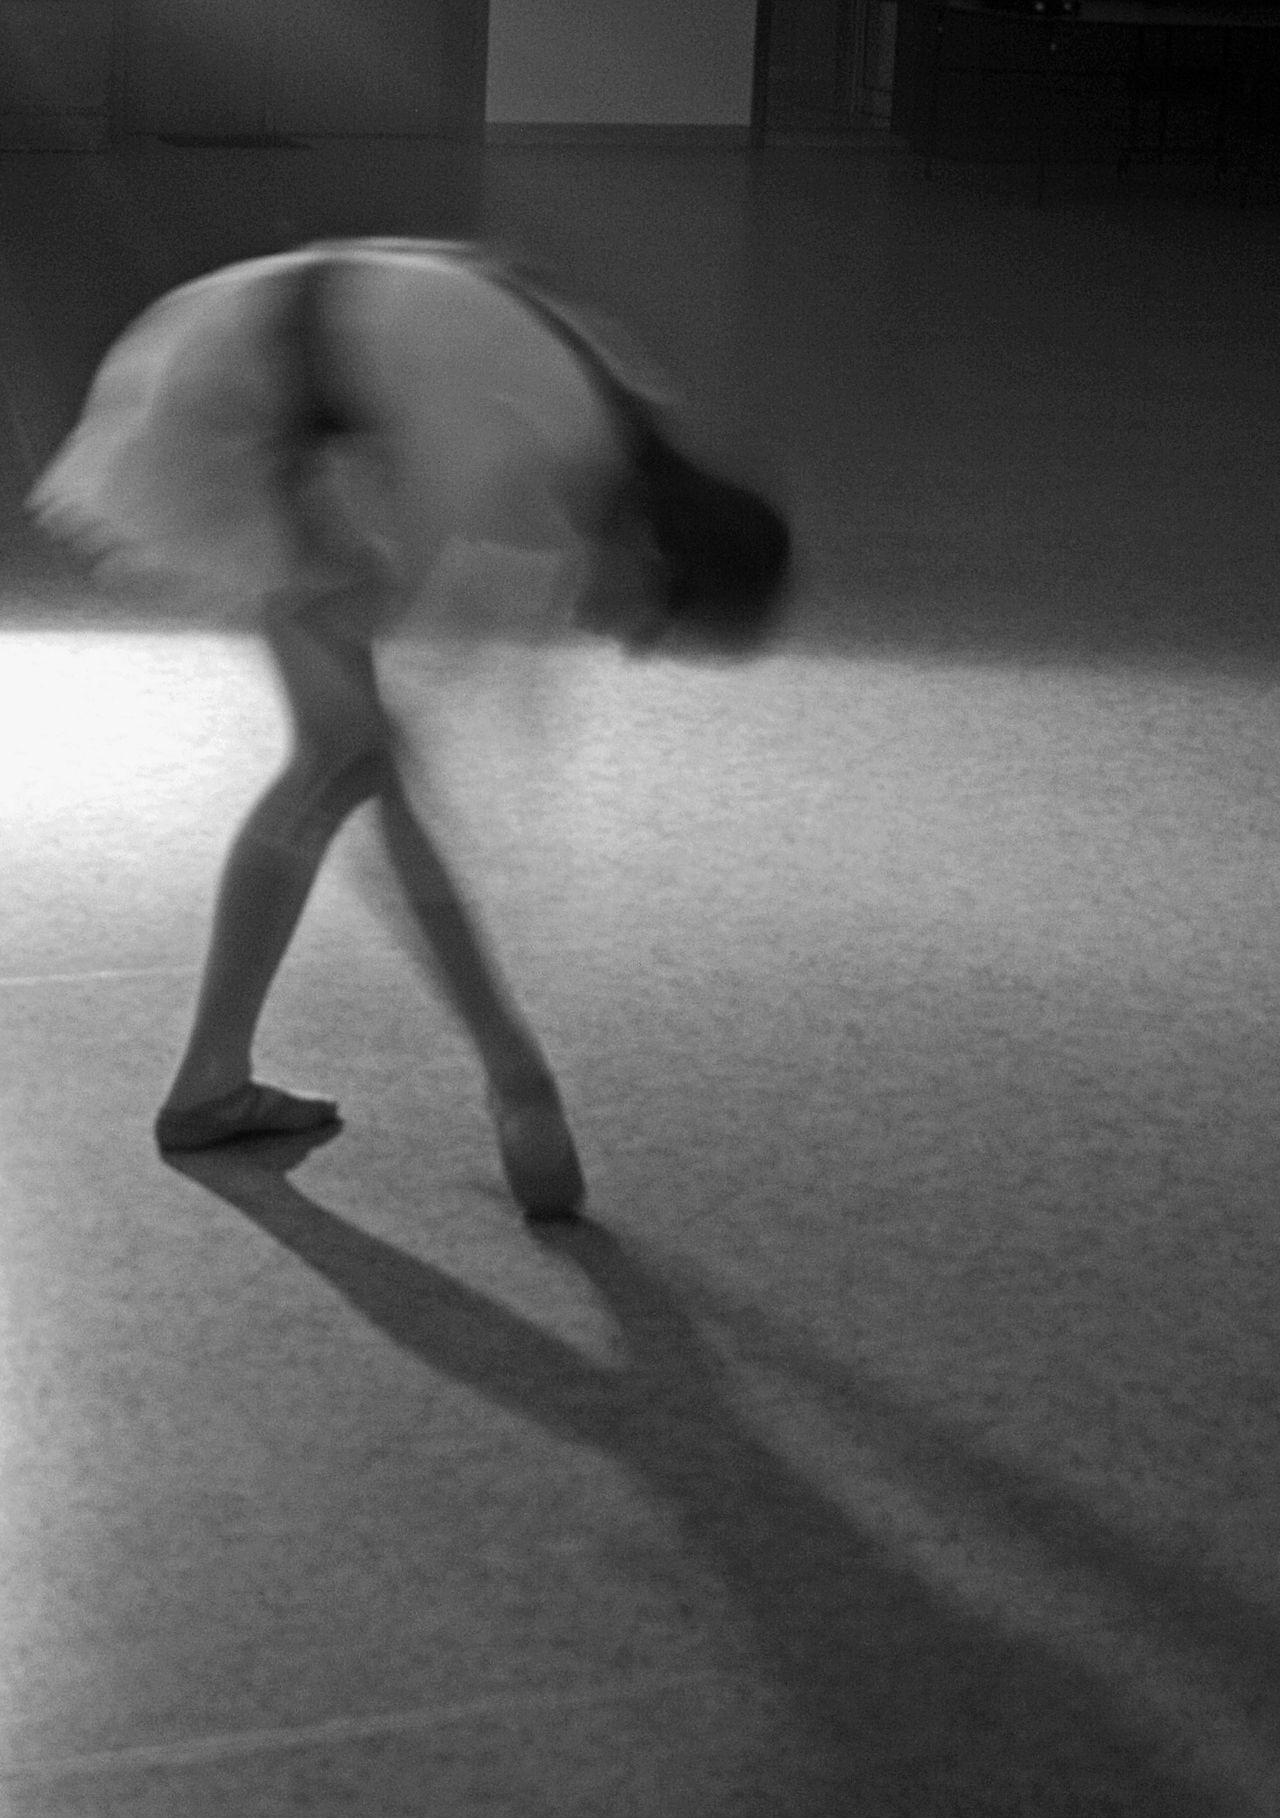 Blurred motion of ballet dancer dancing in studio